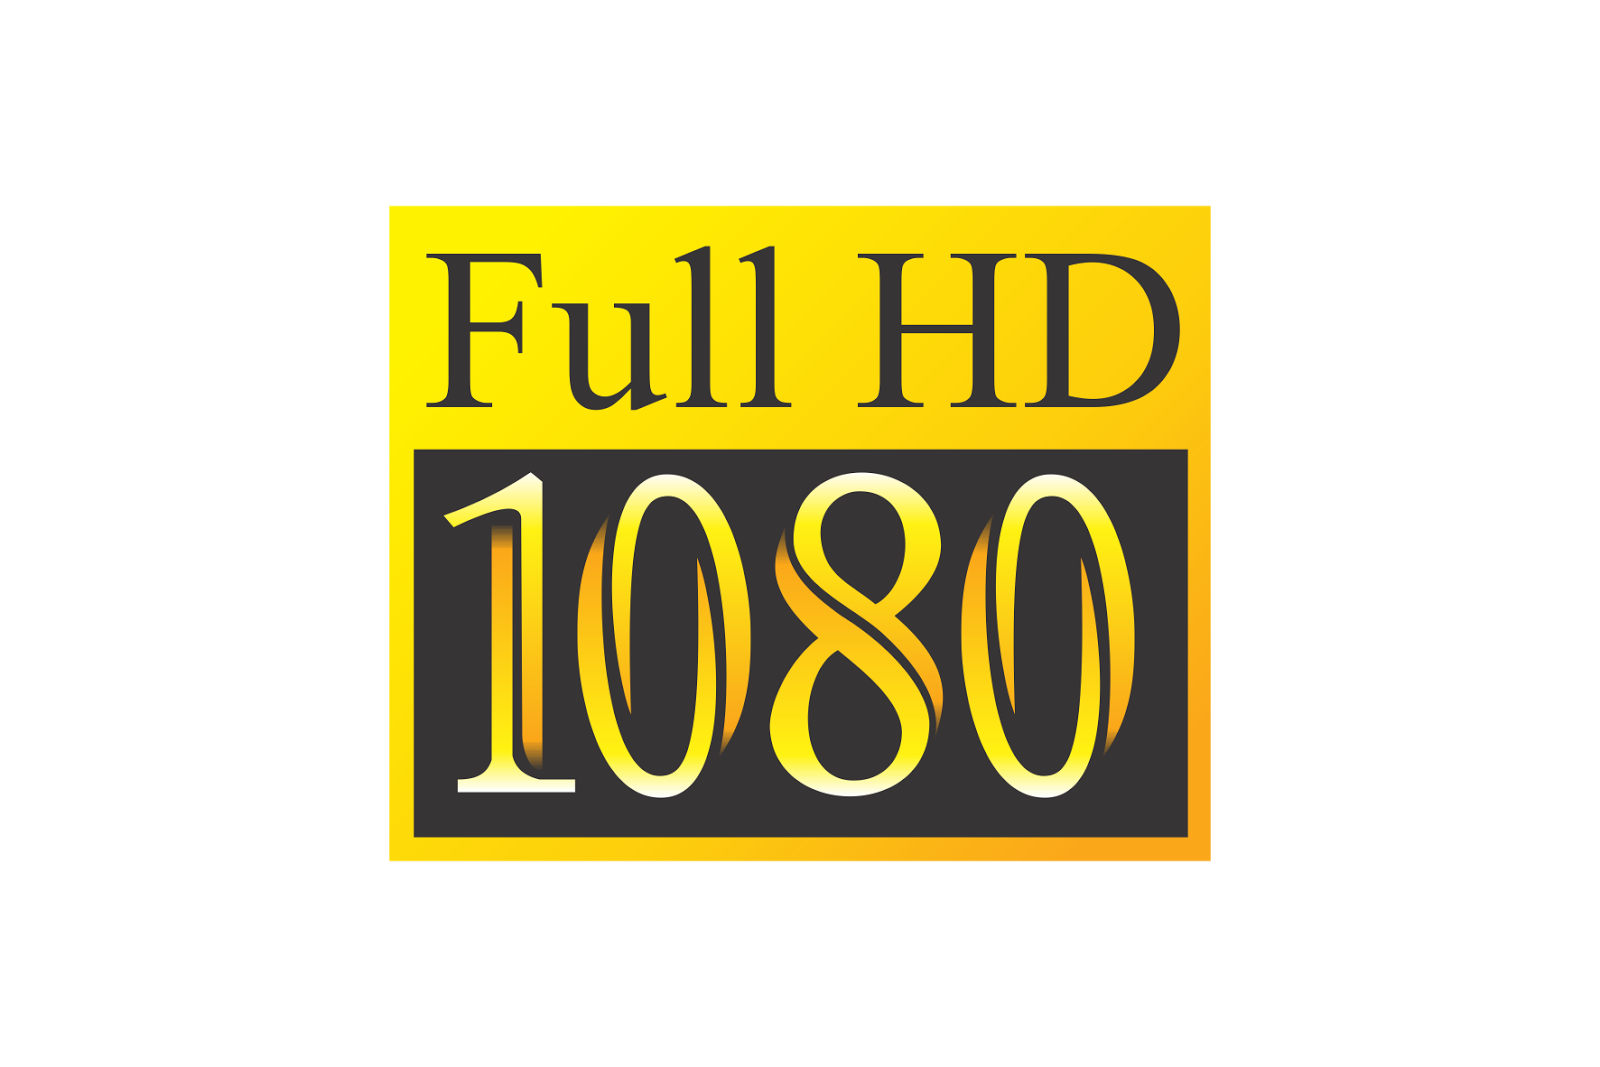 Full Hd Logo Png Www Pixshark Com Images Galleries With A Bite